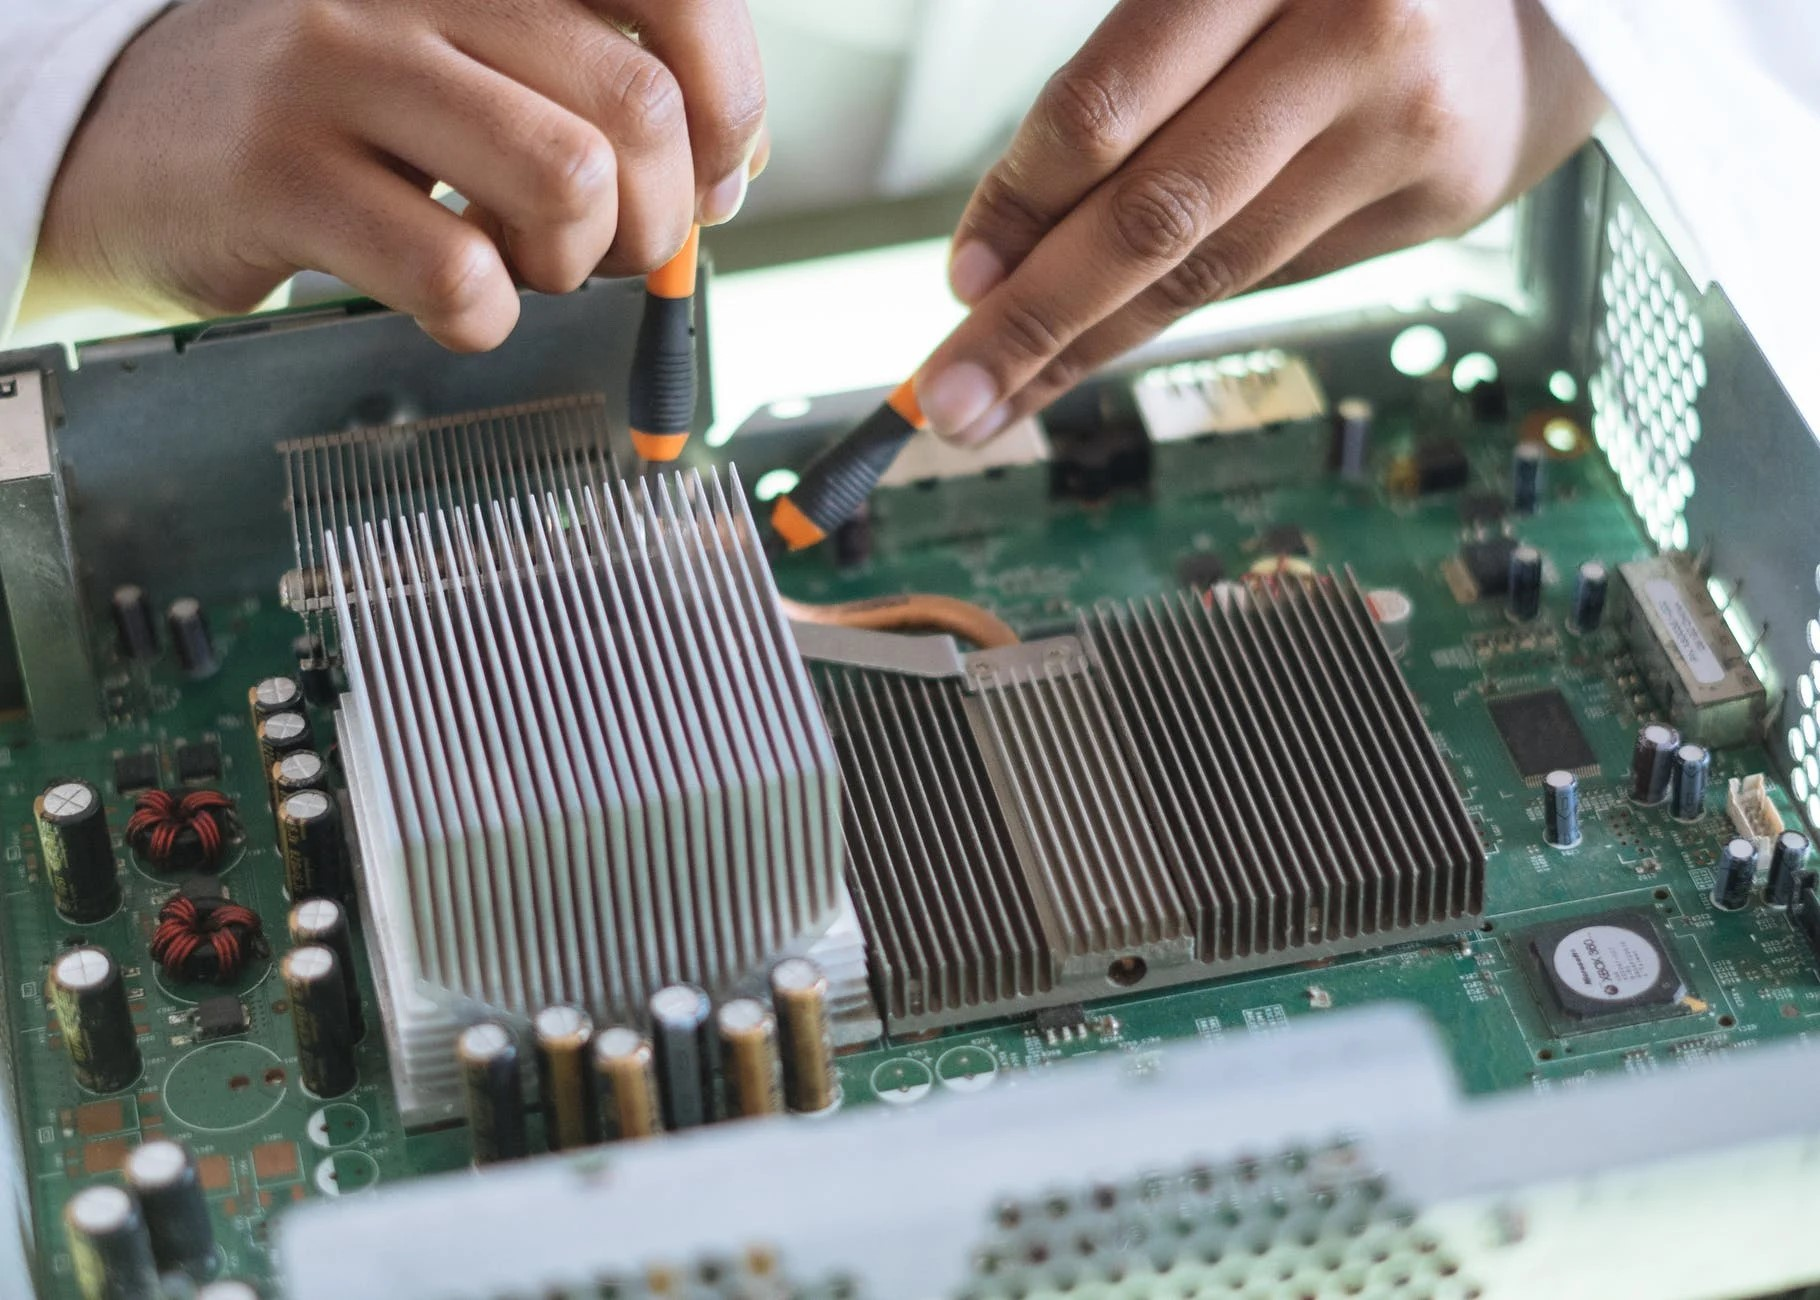 Electronics manufacturing projects vary in complexity